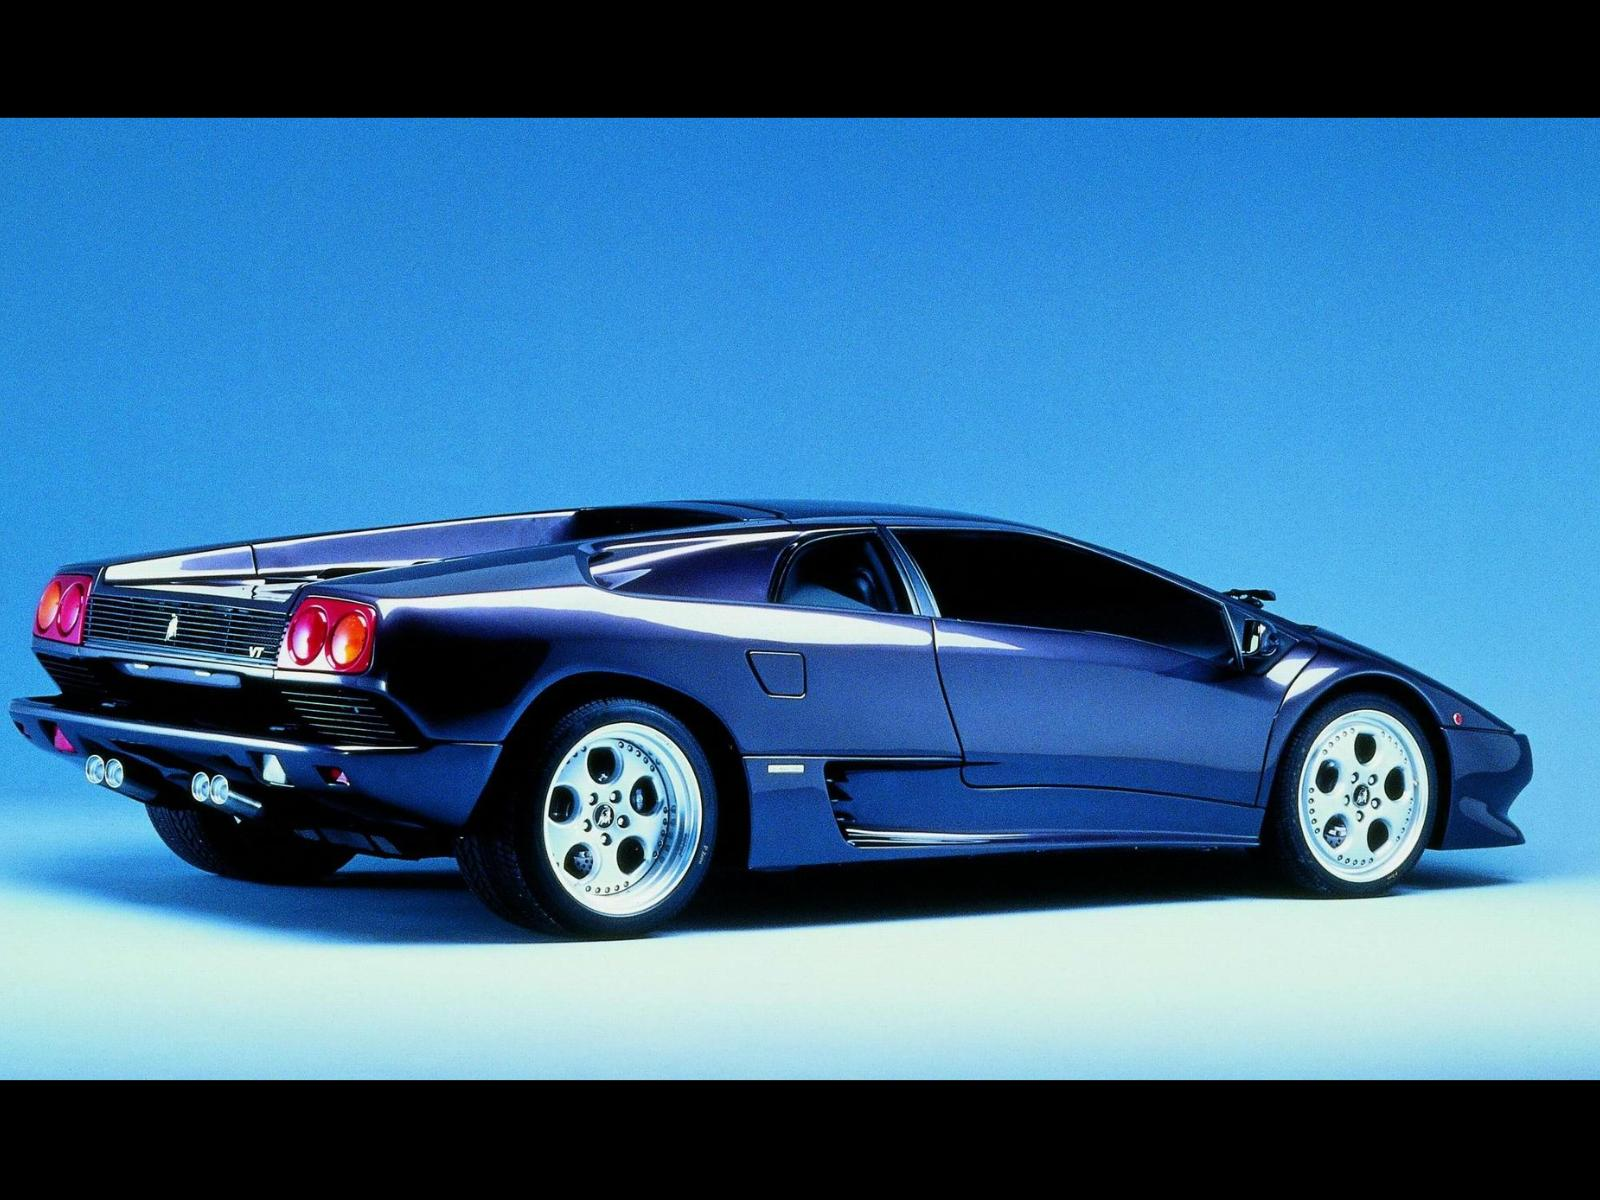 Lamborghini Diablo photo 12987